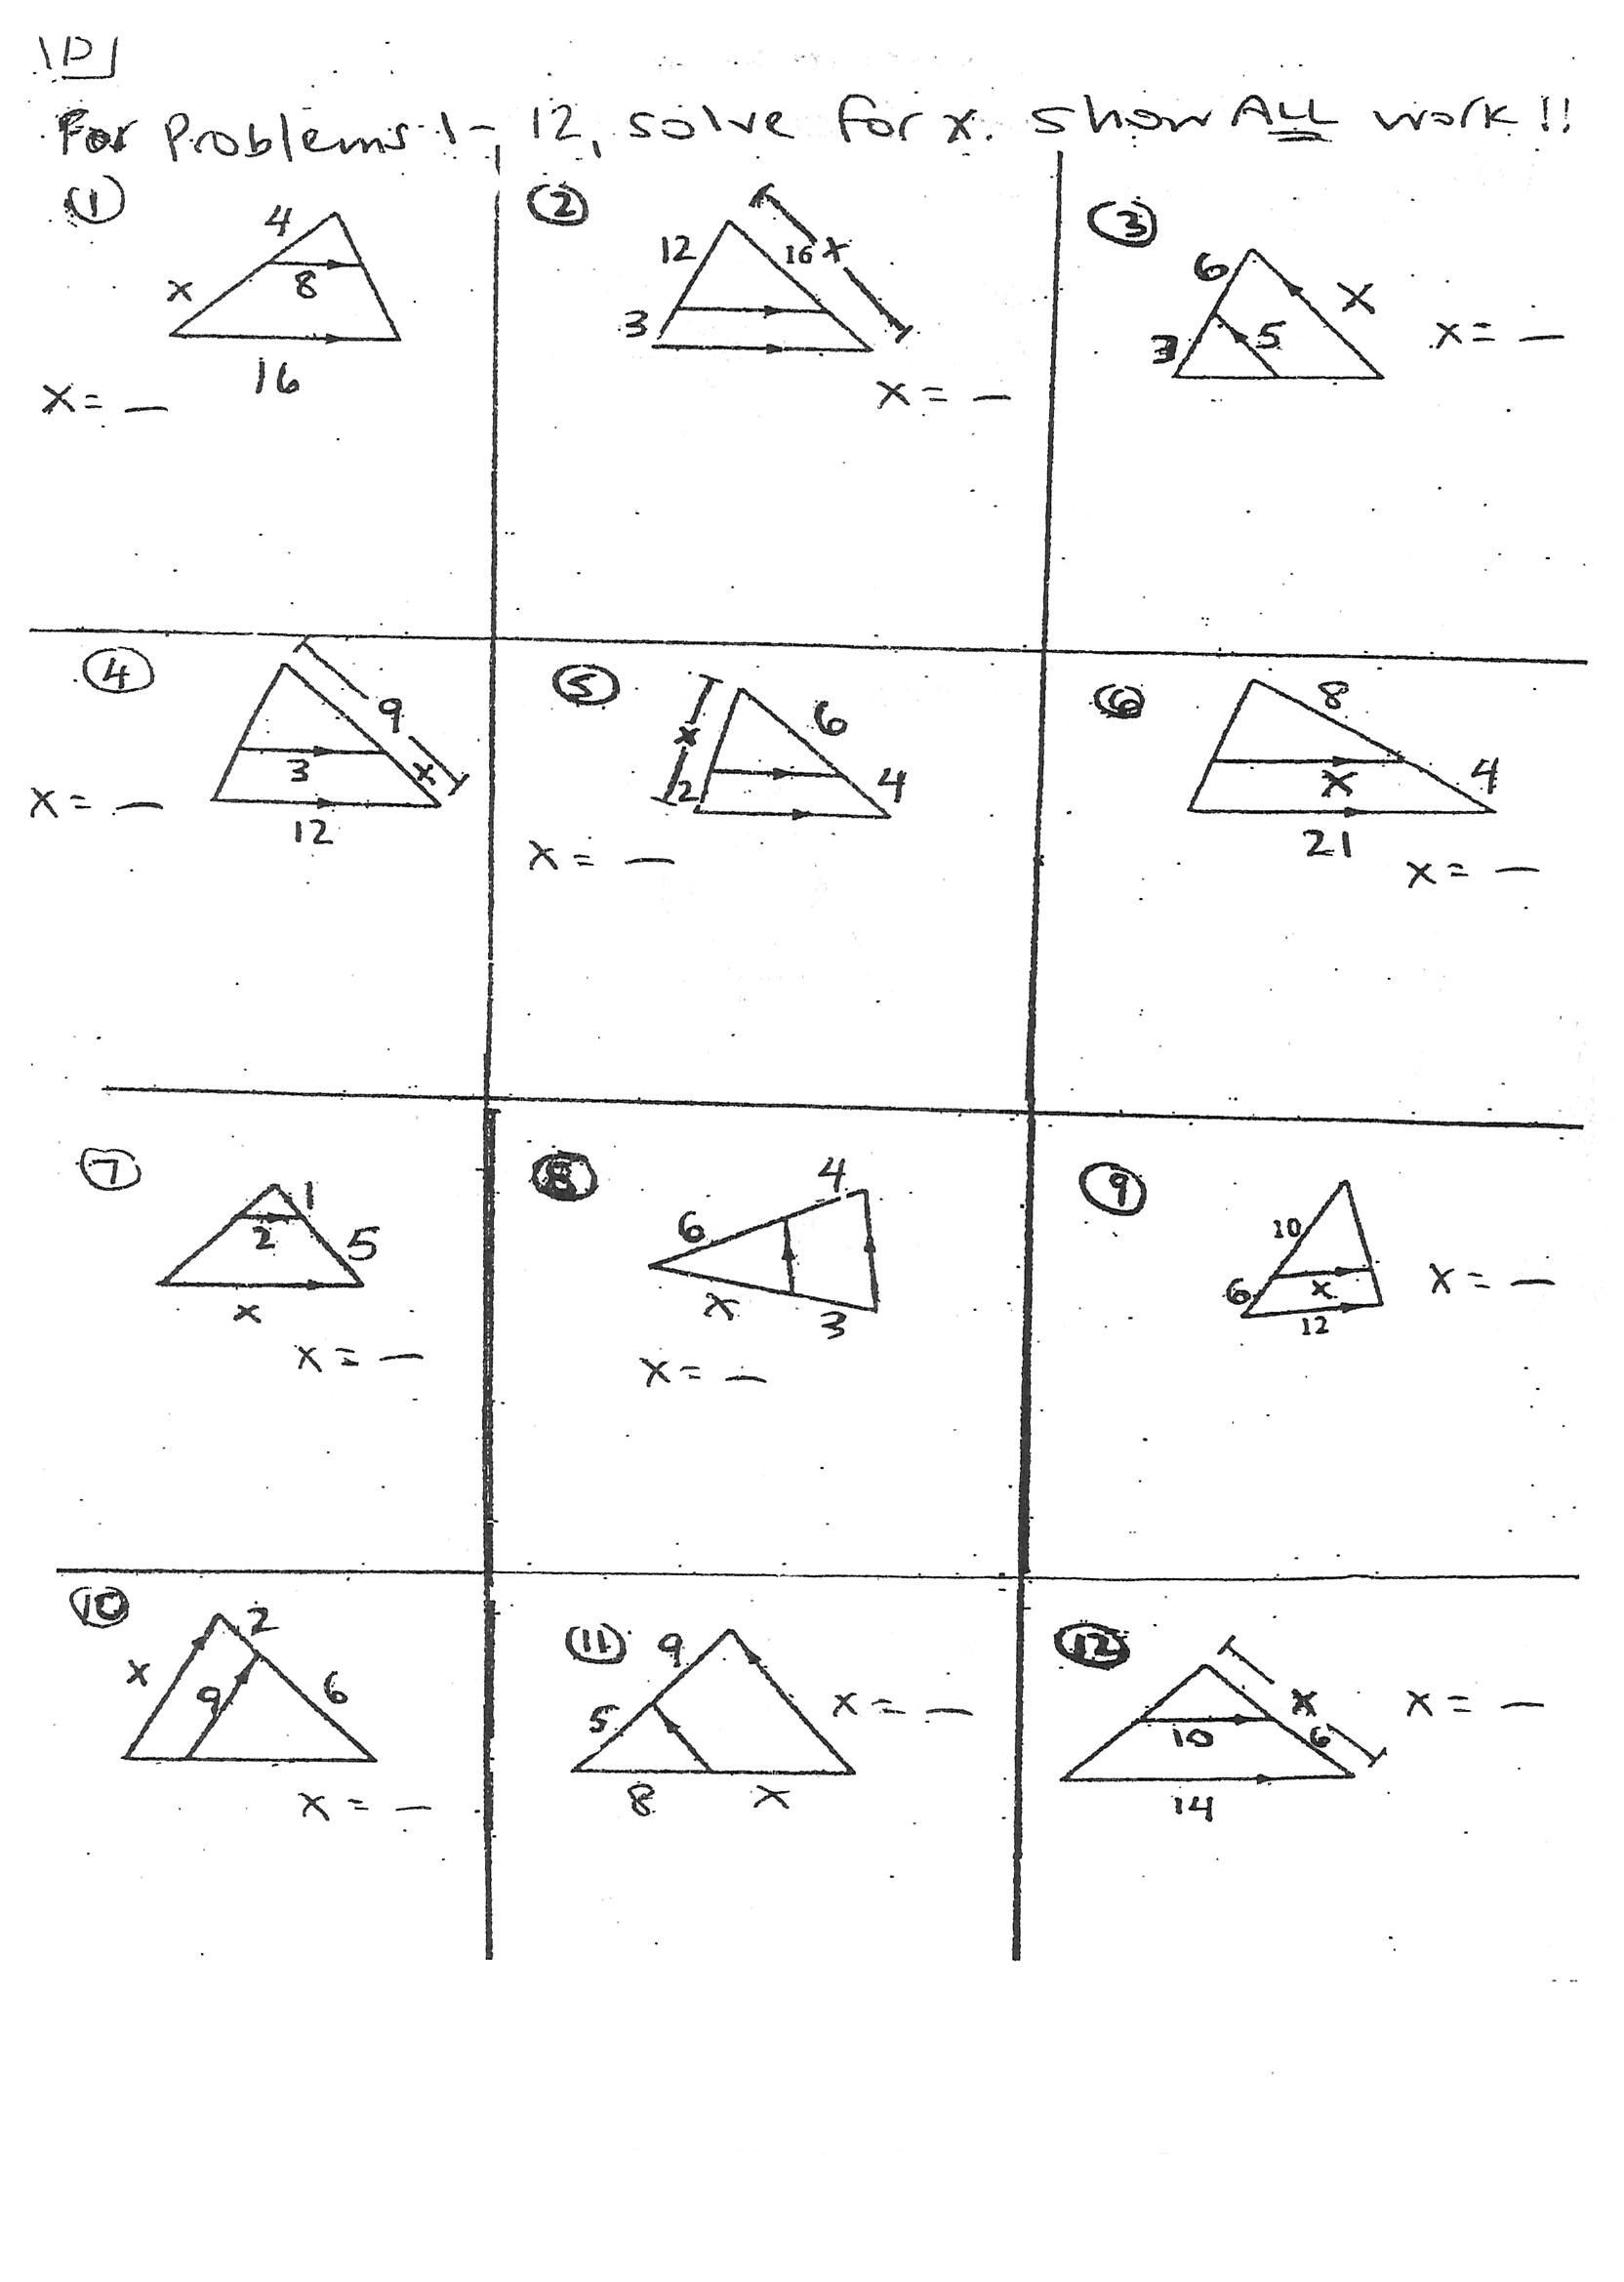 Triangle Inequality theorem Worksheet Image Result for Triangle Midsegments Worksheet